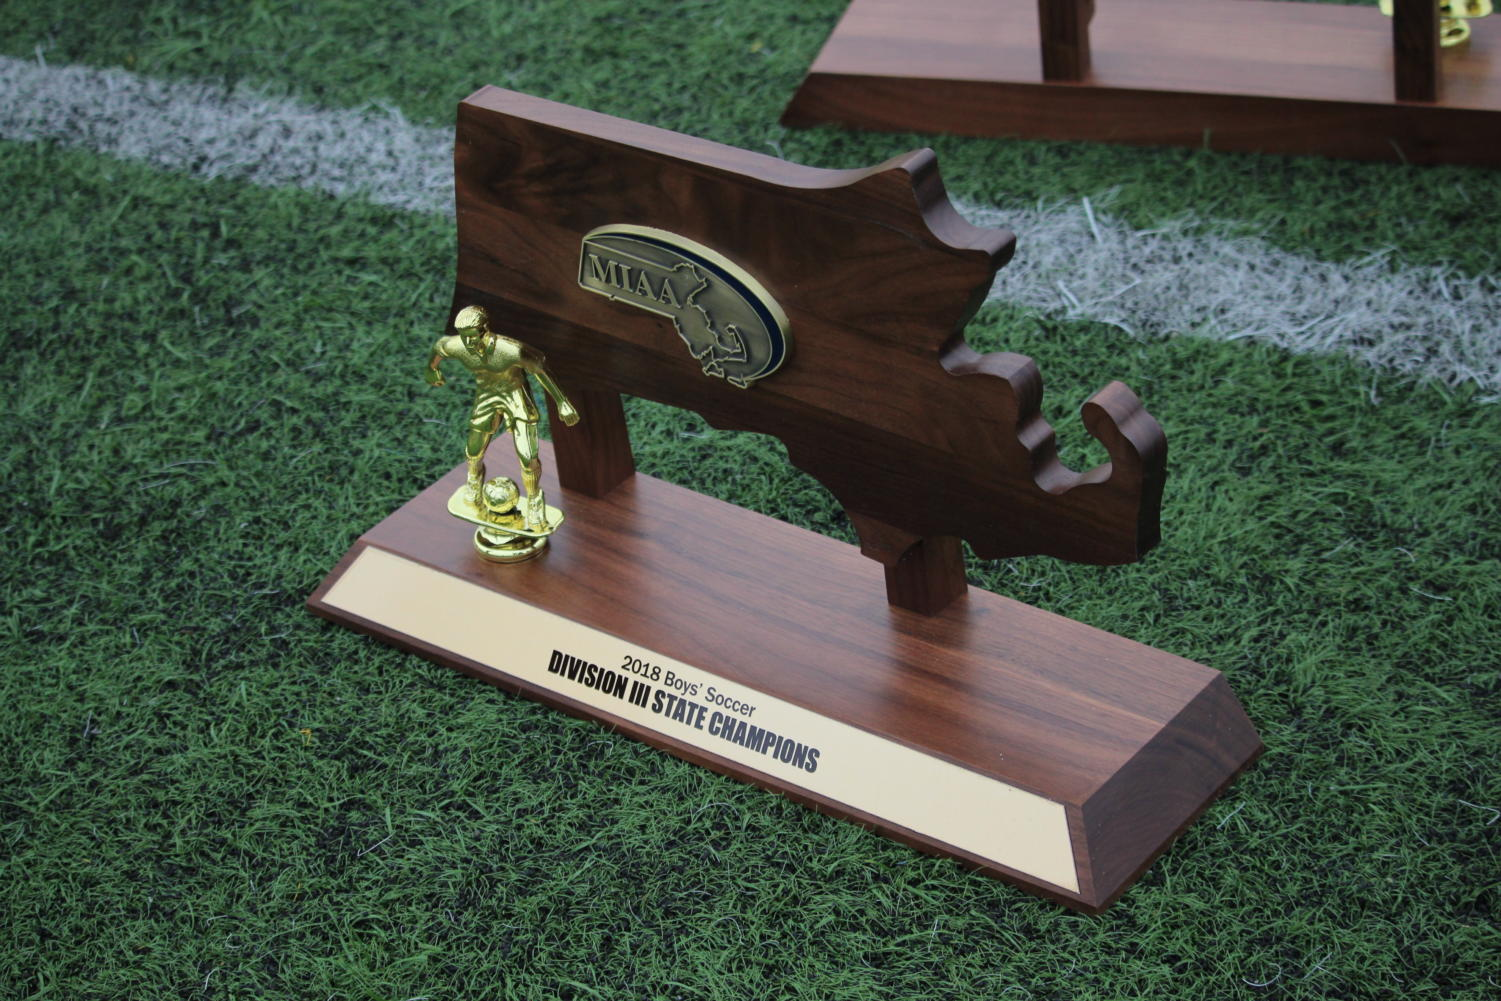 The+State+Championship+trophy+sits+on+the+turf+before+being+presented+to+Wayland.